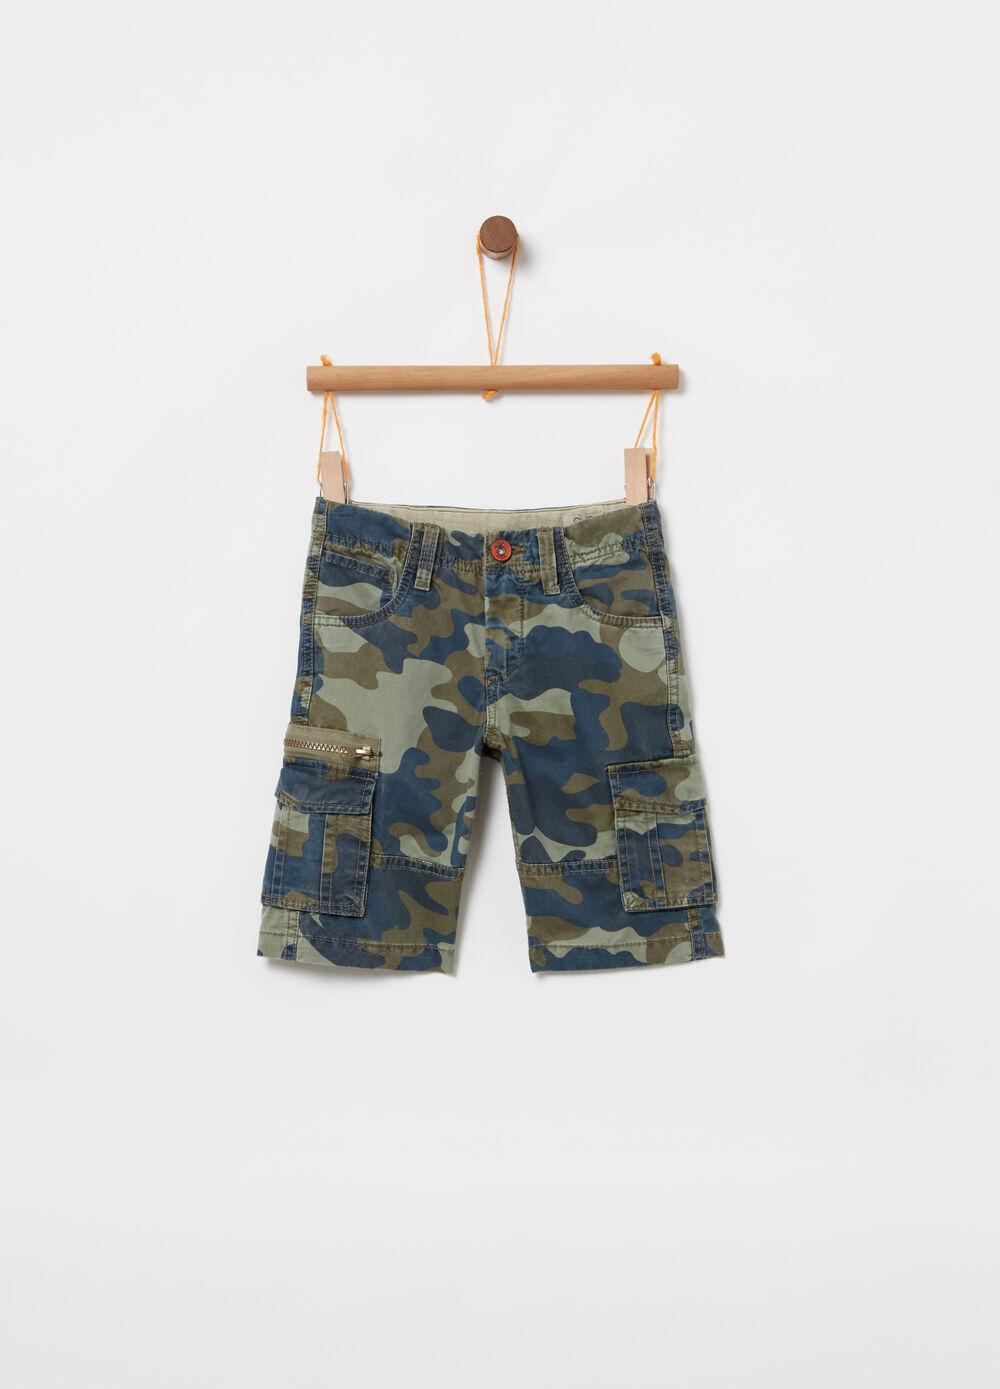 Shorts modello cargo in twill camouflage